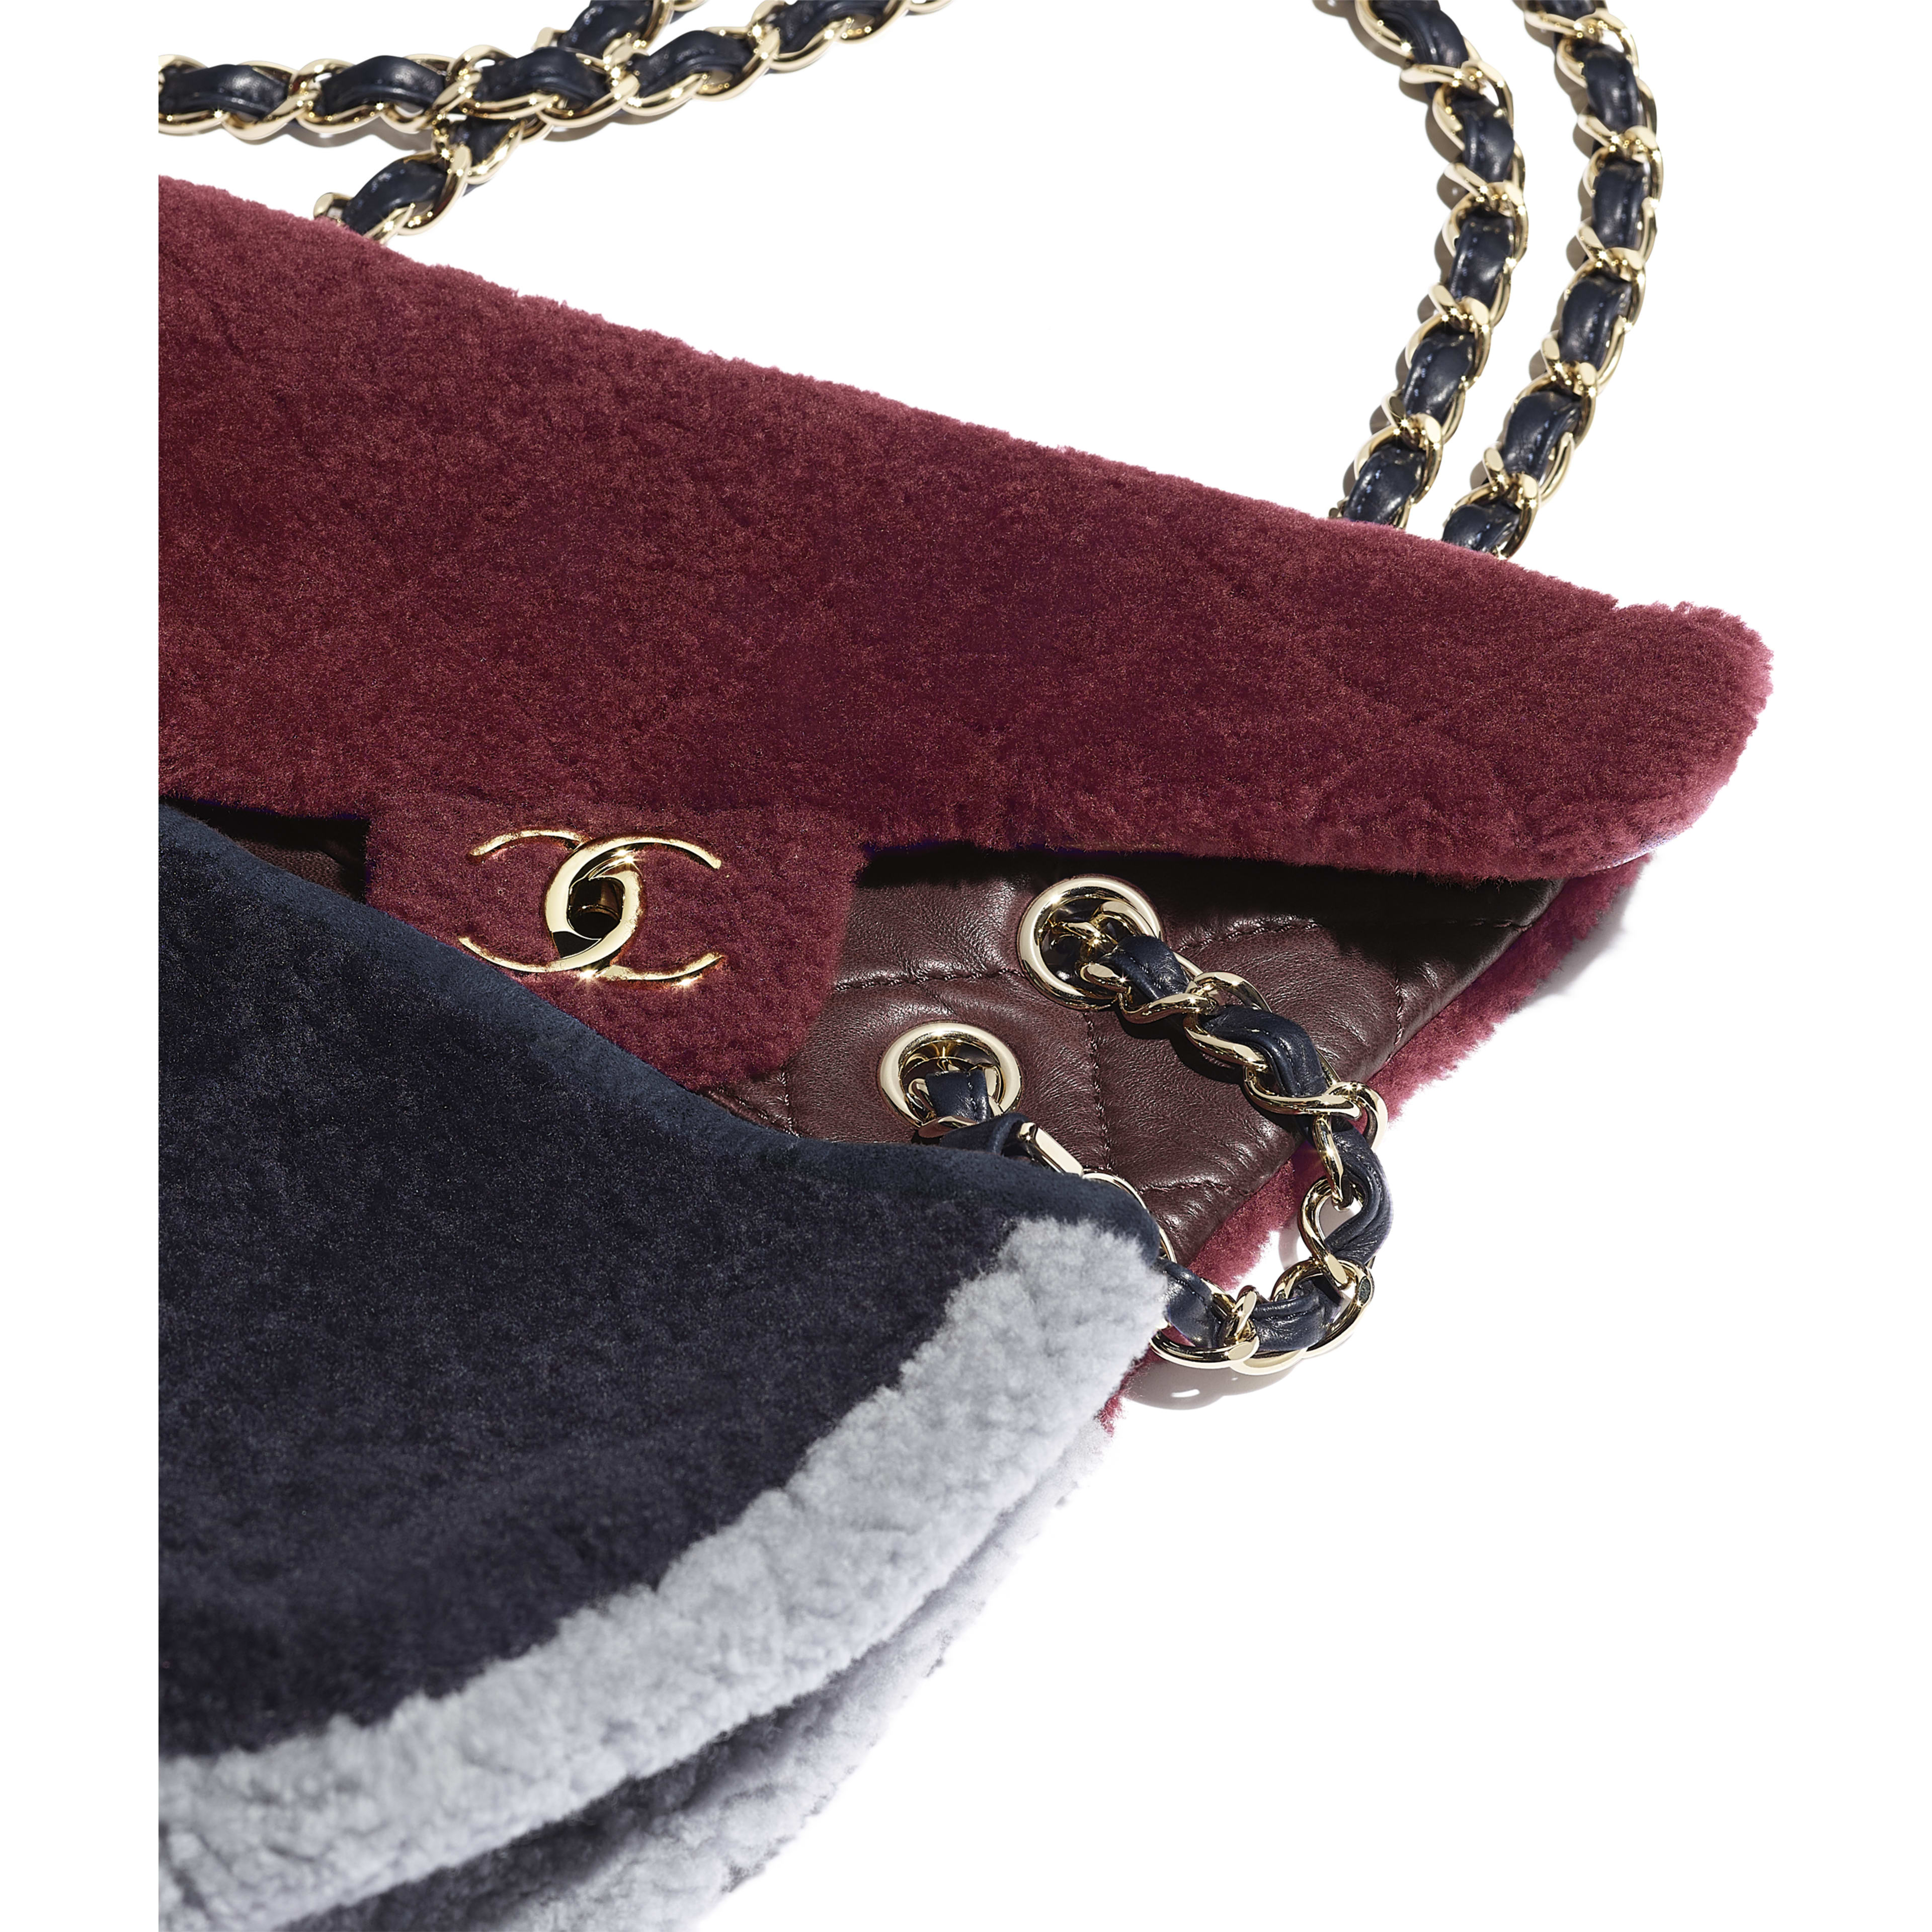 Flap Bag - Burgundy, Navy Blue & Gray - Shearling Sheepskin & Gold-Tone Metal - Extra view - see full sized version